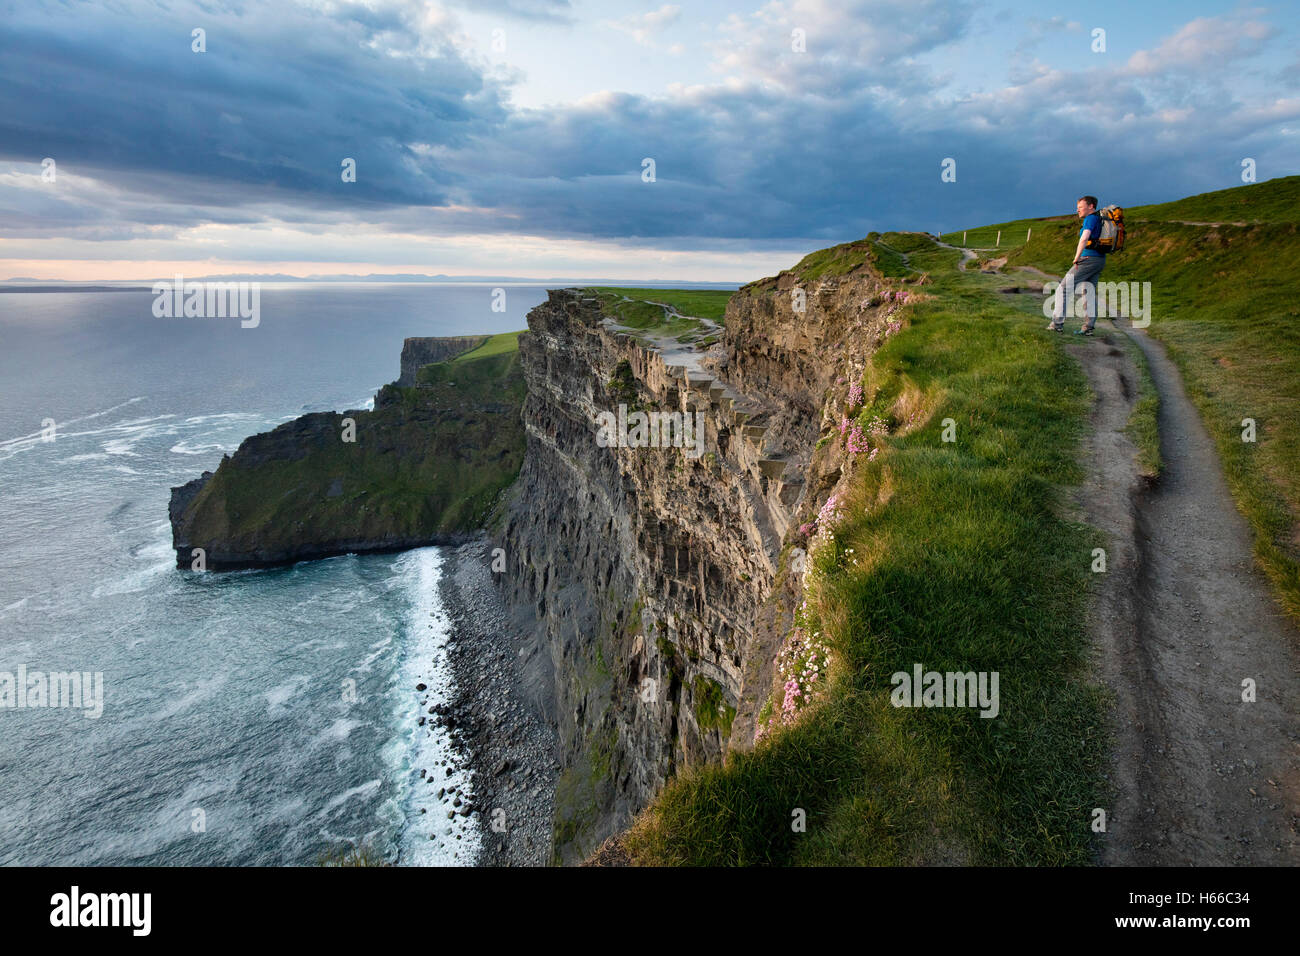 Hiker on top of the Cliffs of Moher, County Clare, Ireland. - Stock Image